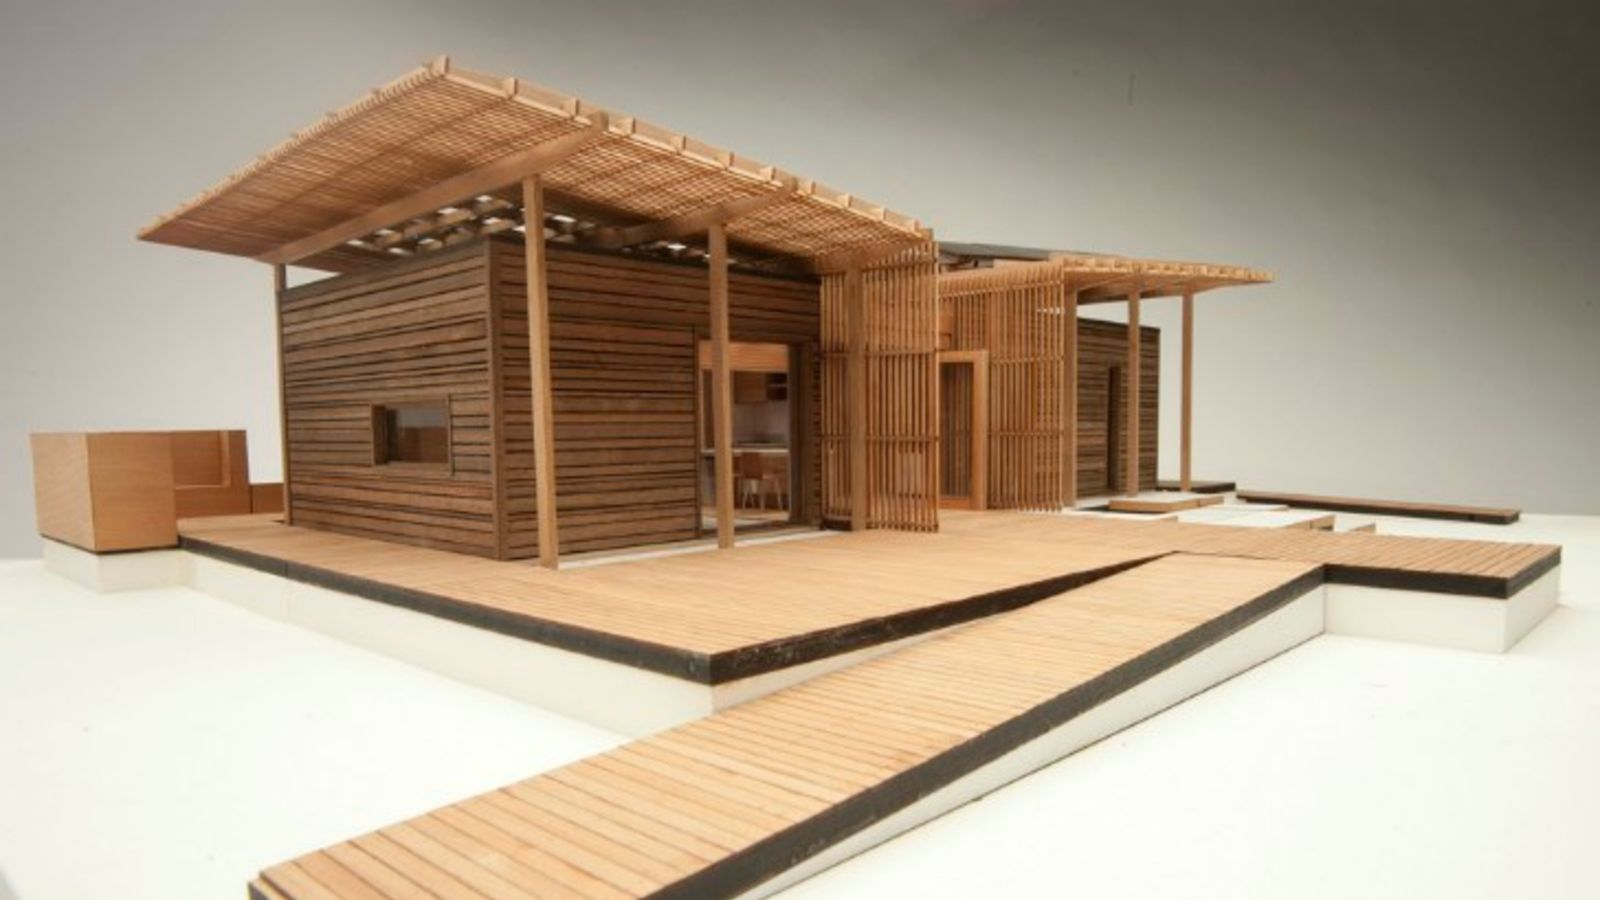 Scale wood model of First Light eco house